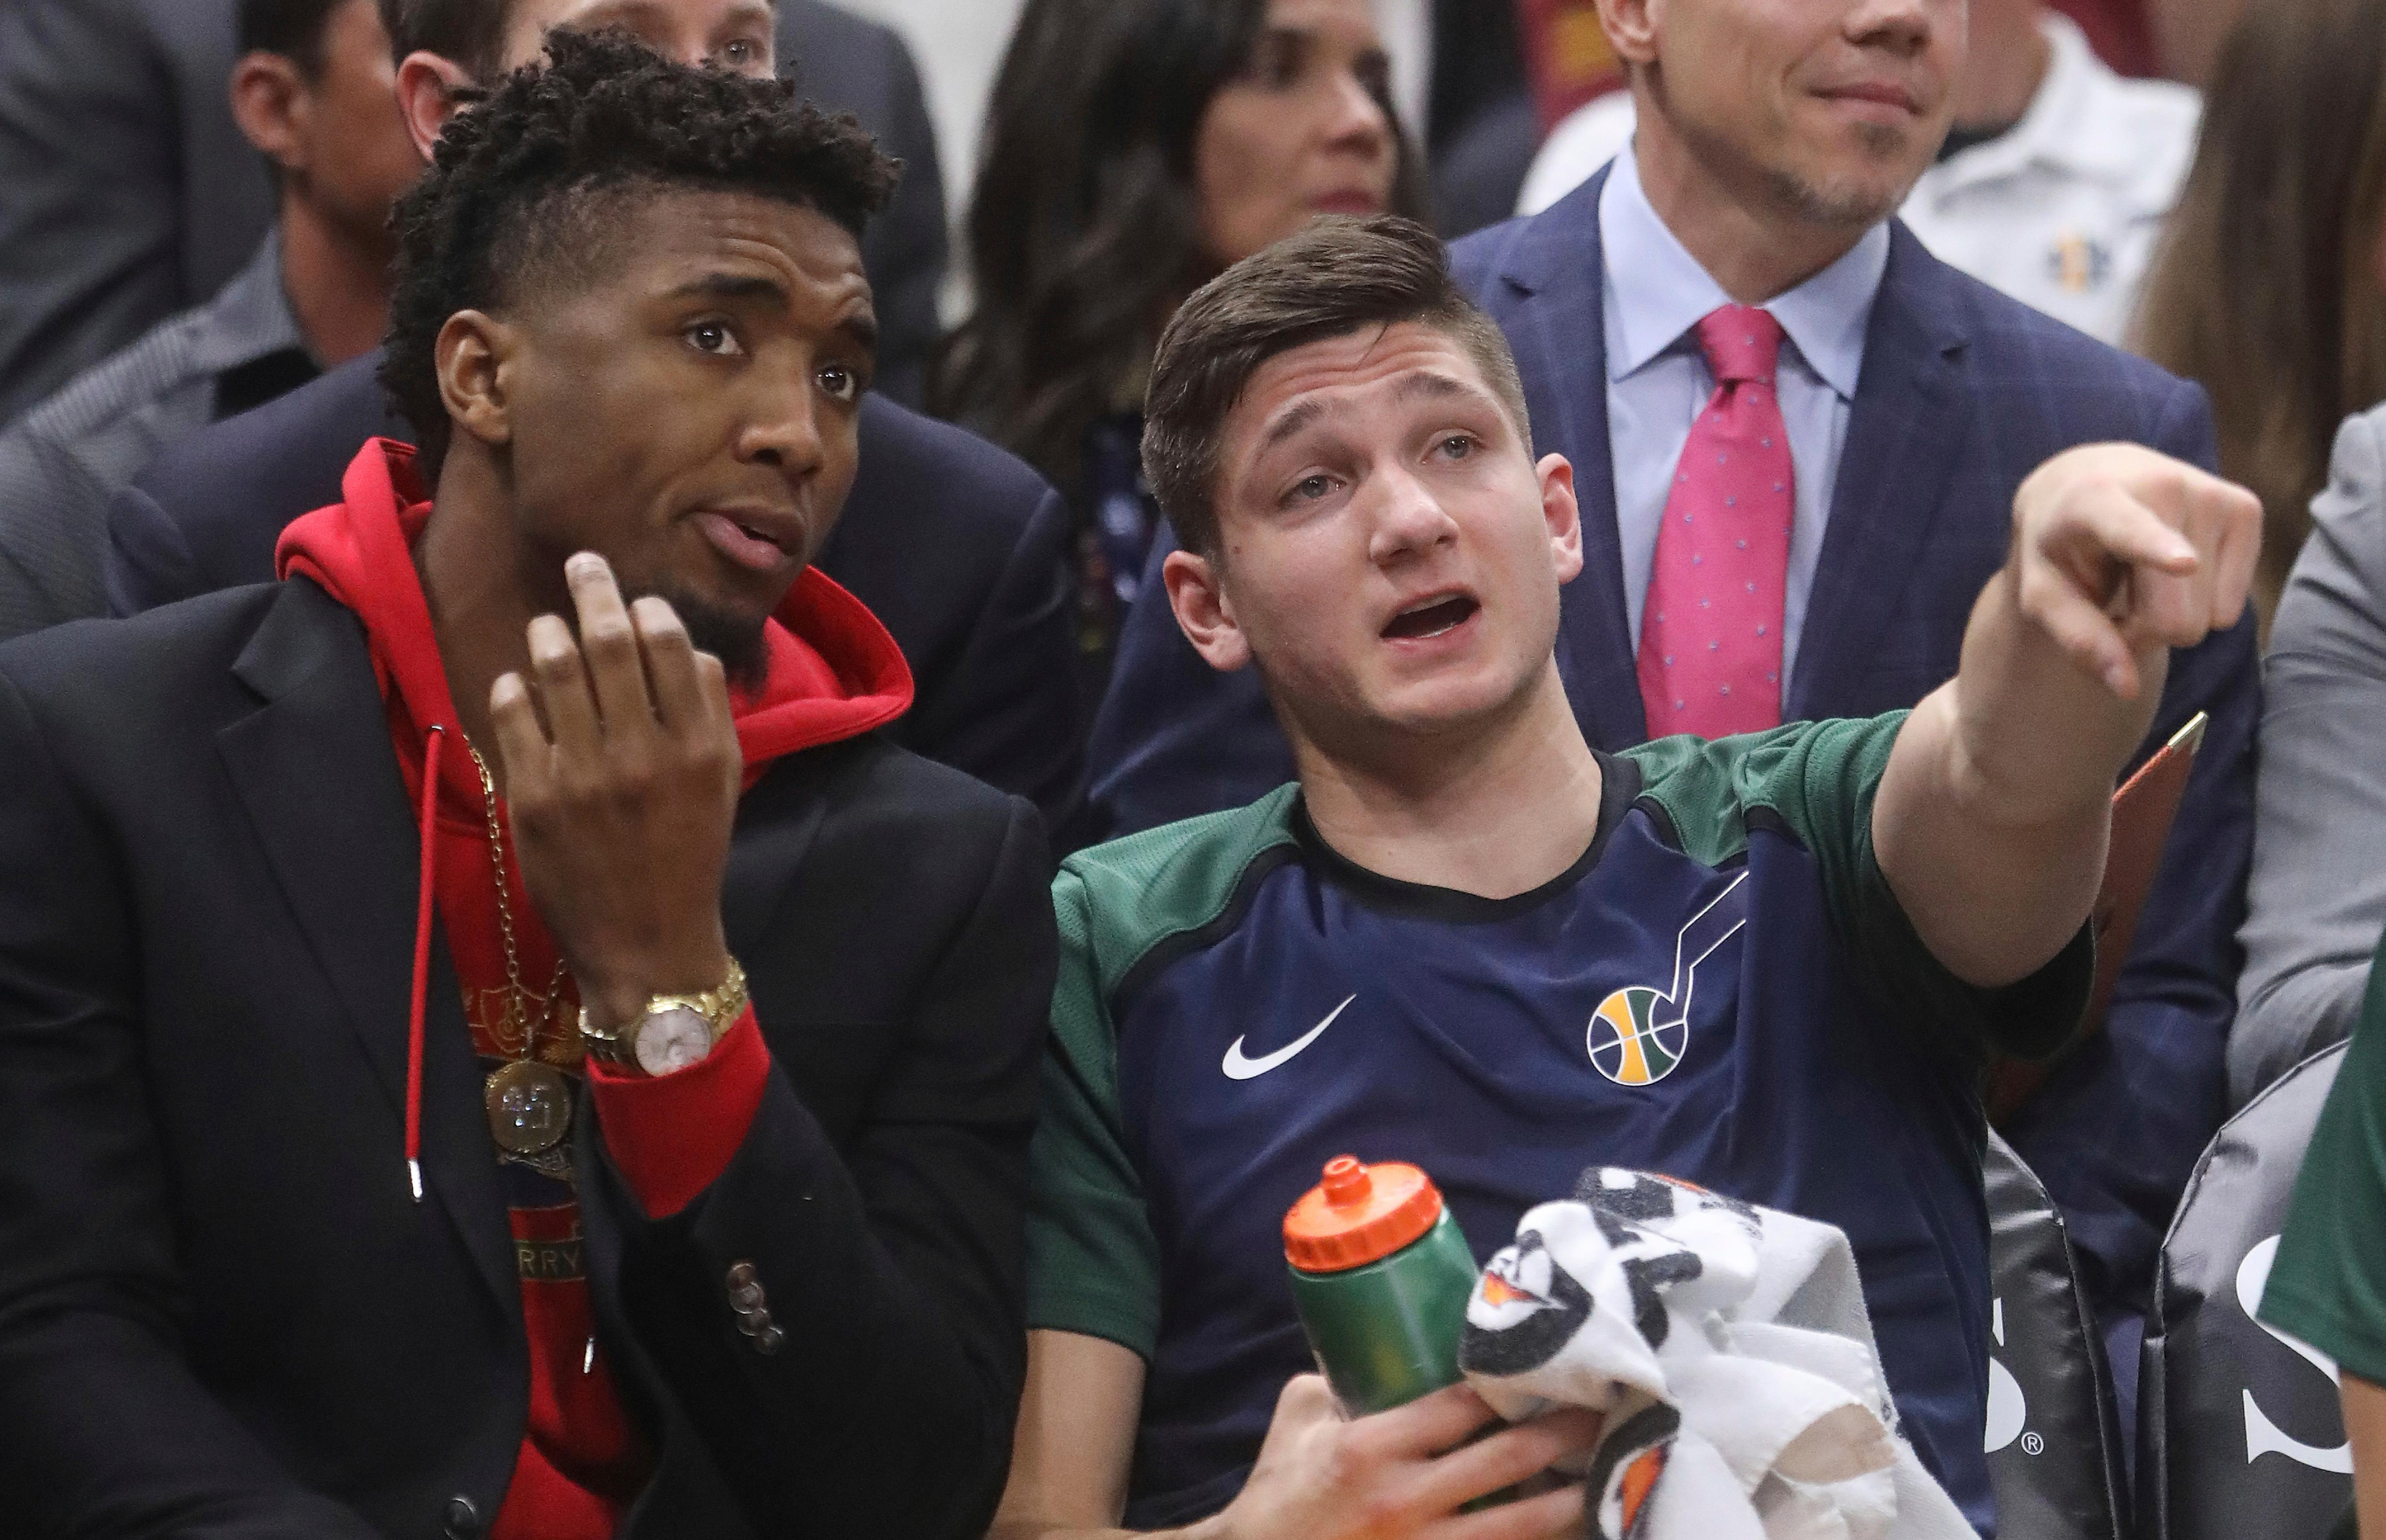 Utah Jazz's Donovan Mitchell, left, speaks with Grayson Allen, right, after he sits on the bench in the first half during an NBA basketball game against the Toronto Raptors Monday, Nov. 5, 2018, in Salt Lake City. (AP Photo/Rick Bowmer)